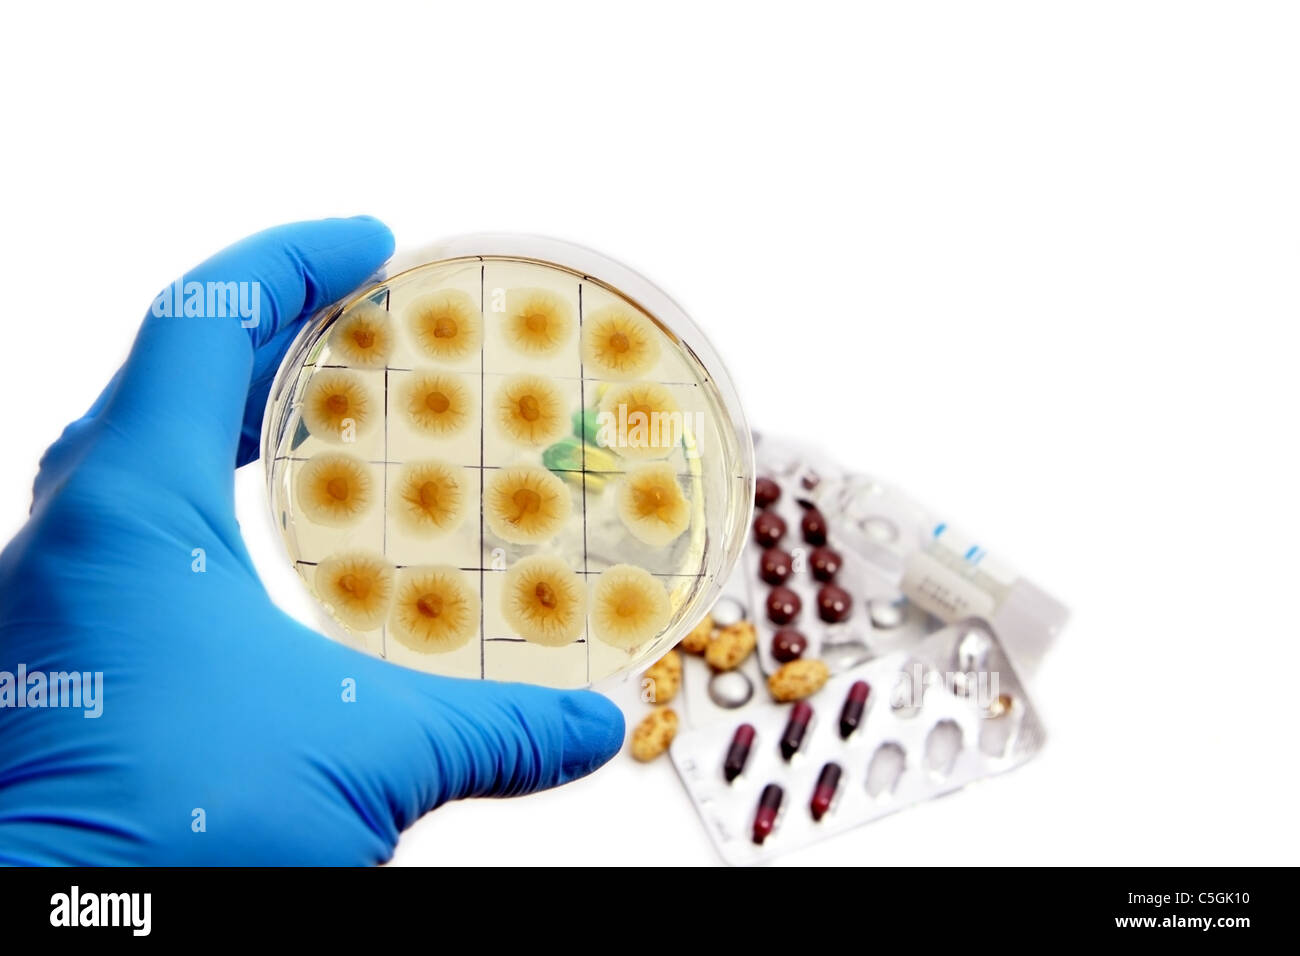 arm in glove with fungi on the plate and medicins on the background - Stock Image